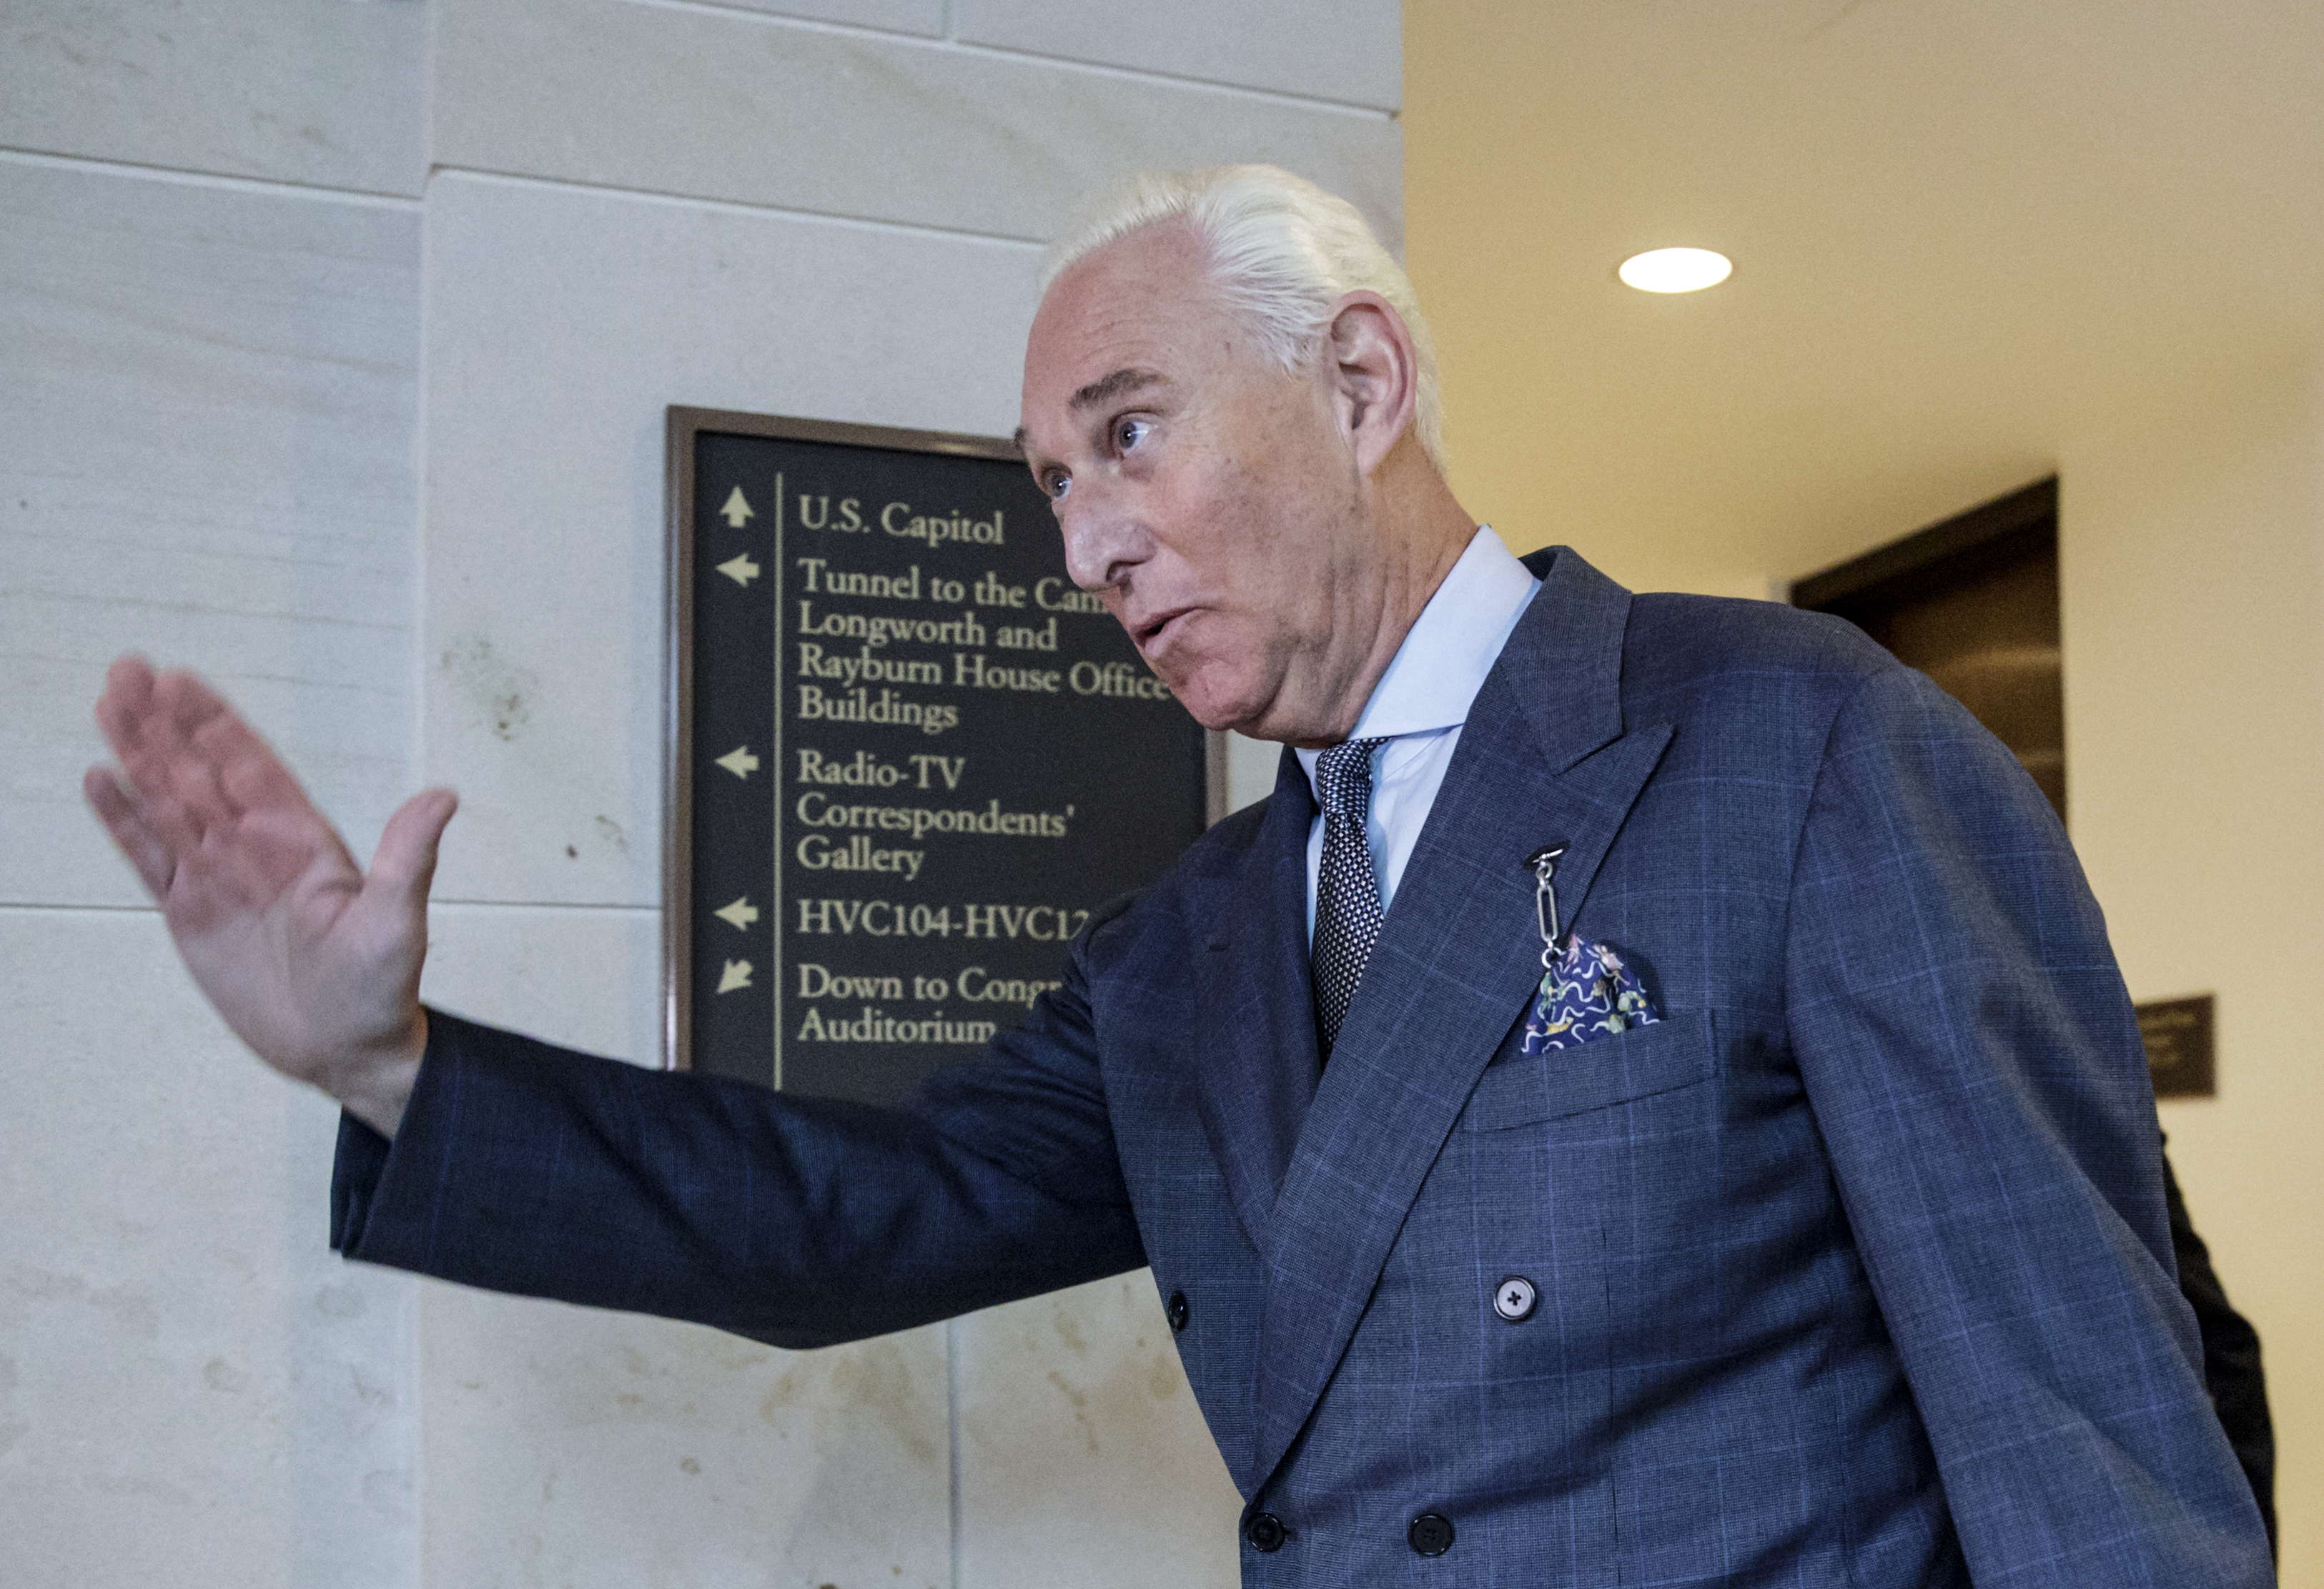 Roger Stone arrives to testify before the House Intelligence Committee, on Capitol Hill in Washington, D.C. on Sept. 26, 2017.